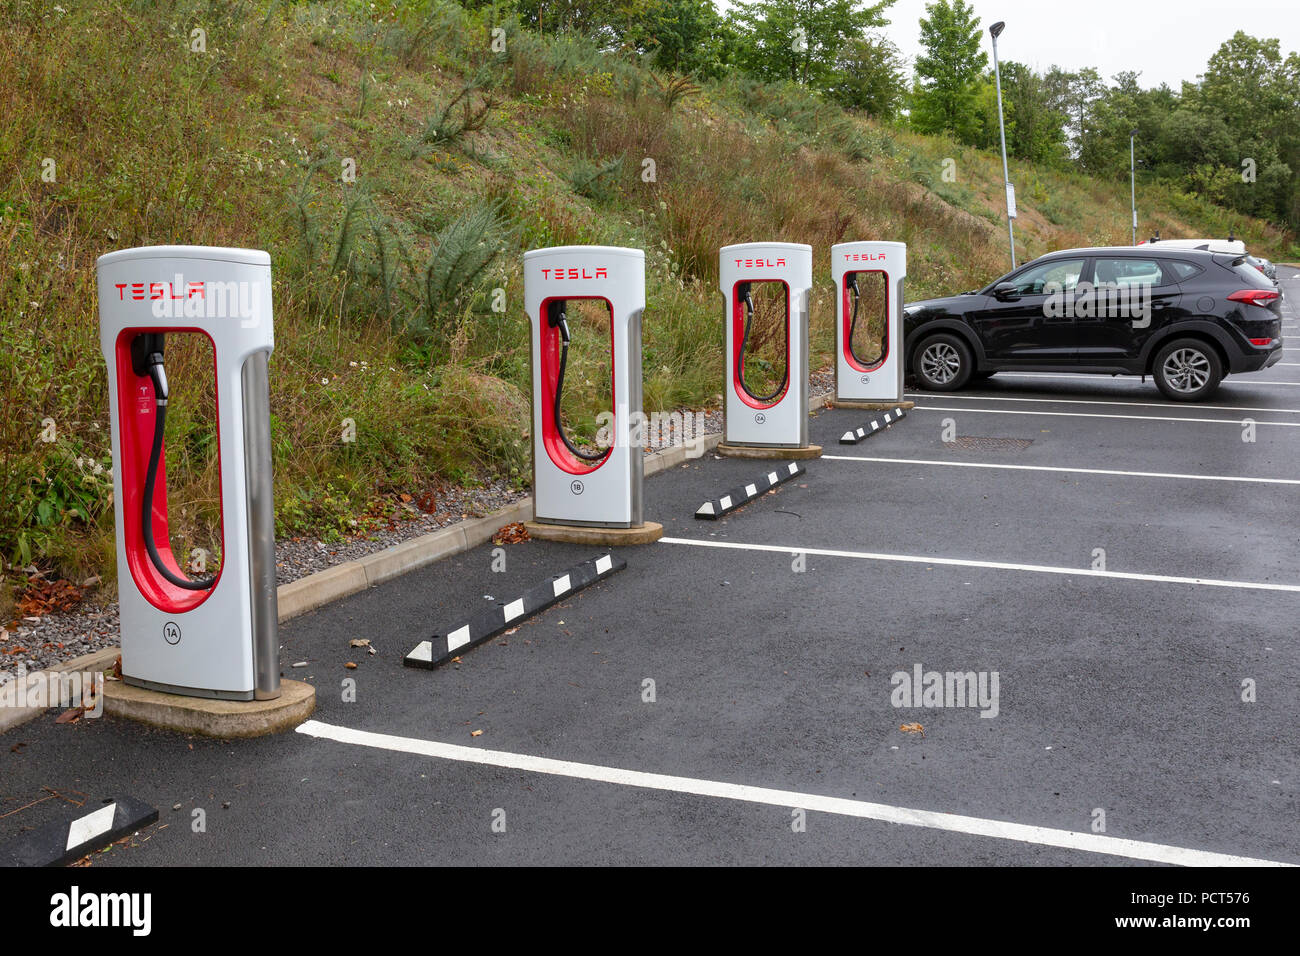 SARN, UNITED KINGDOM - AUGUST 2, 2018 : A row of Tesla Superchargers next to empty parking bays at the Sarn Park motorway services off the M4 near Bri - Stock Image